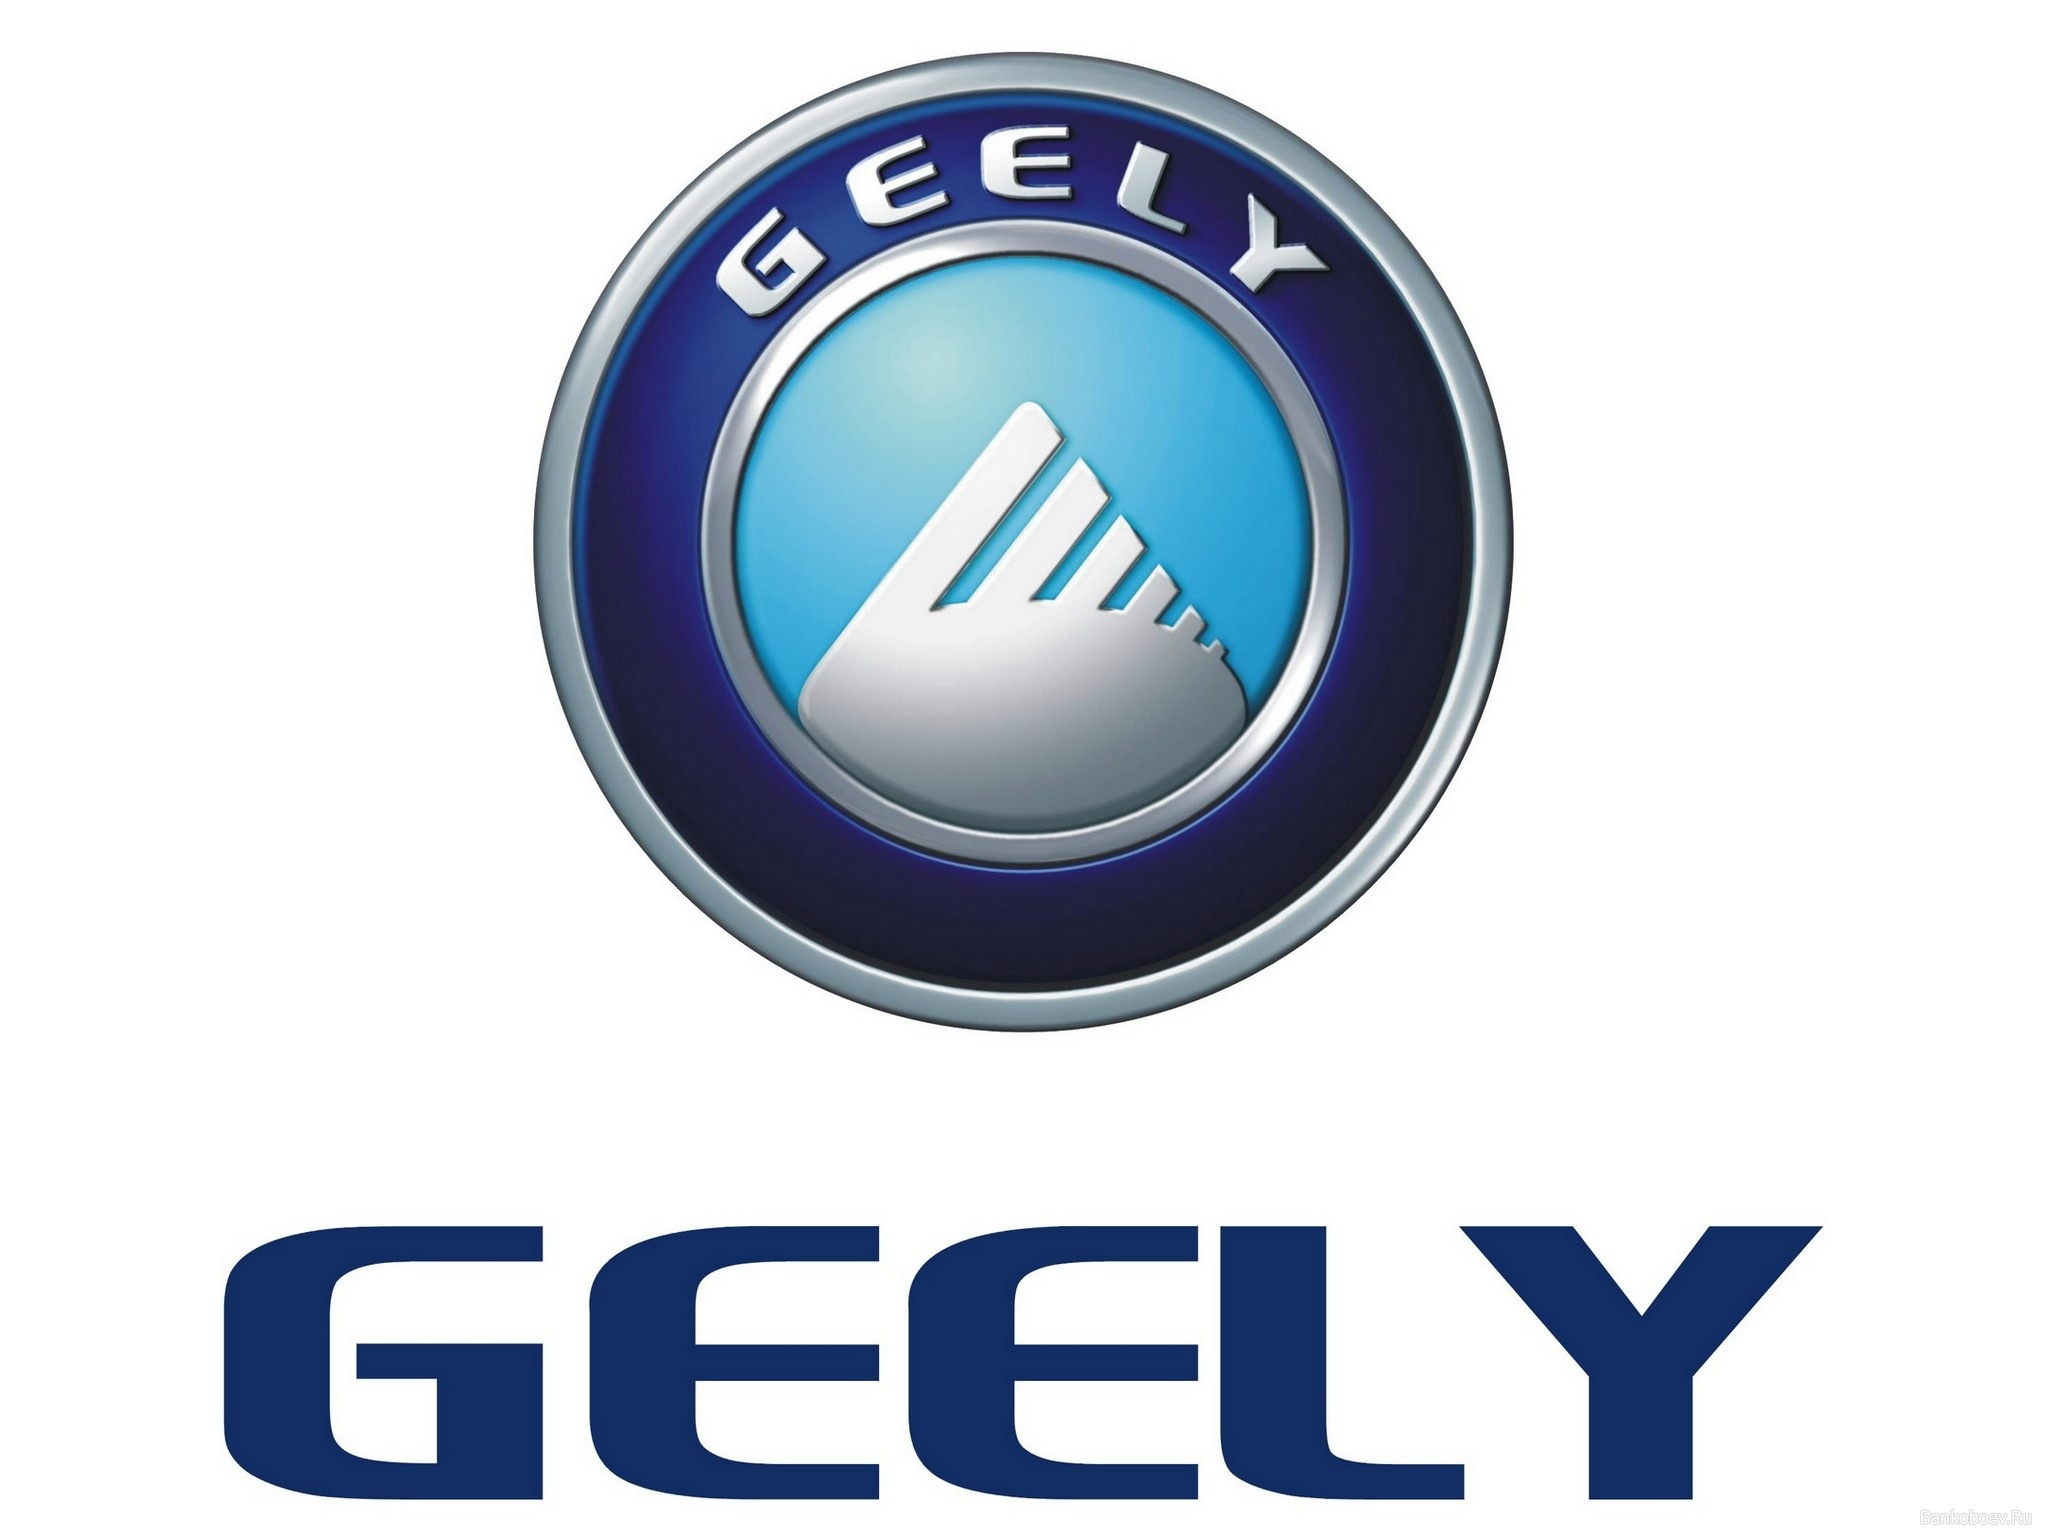 Geely Symbol Wallpaper